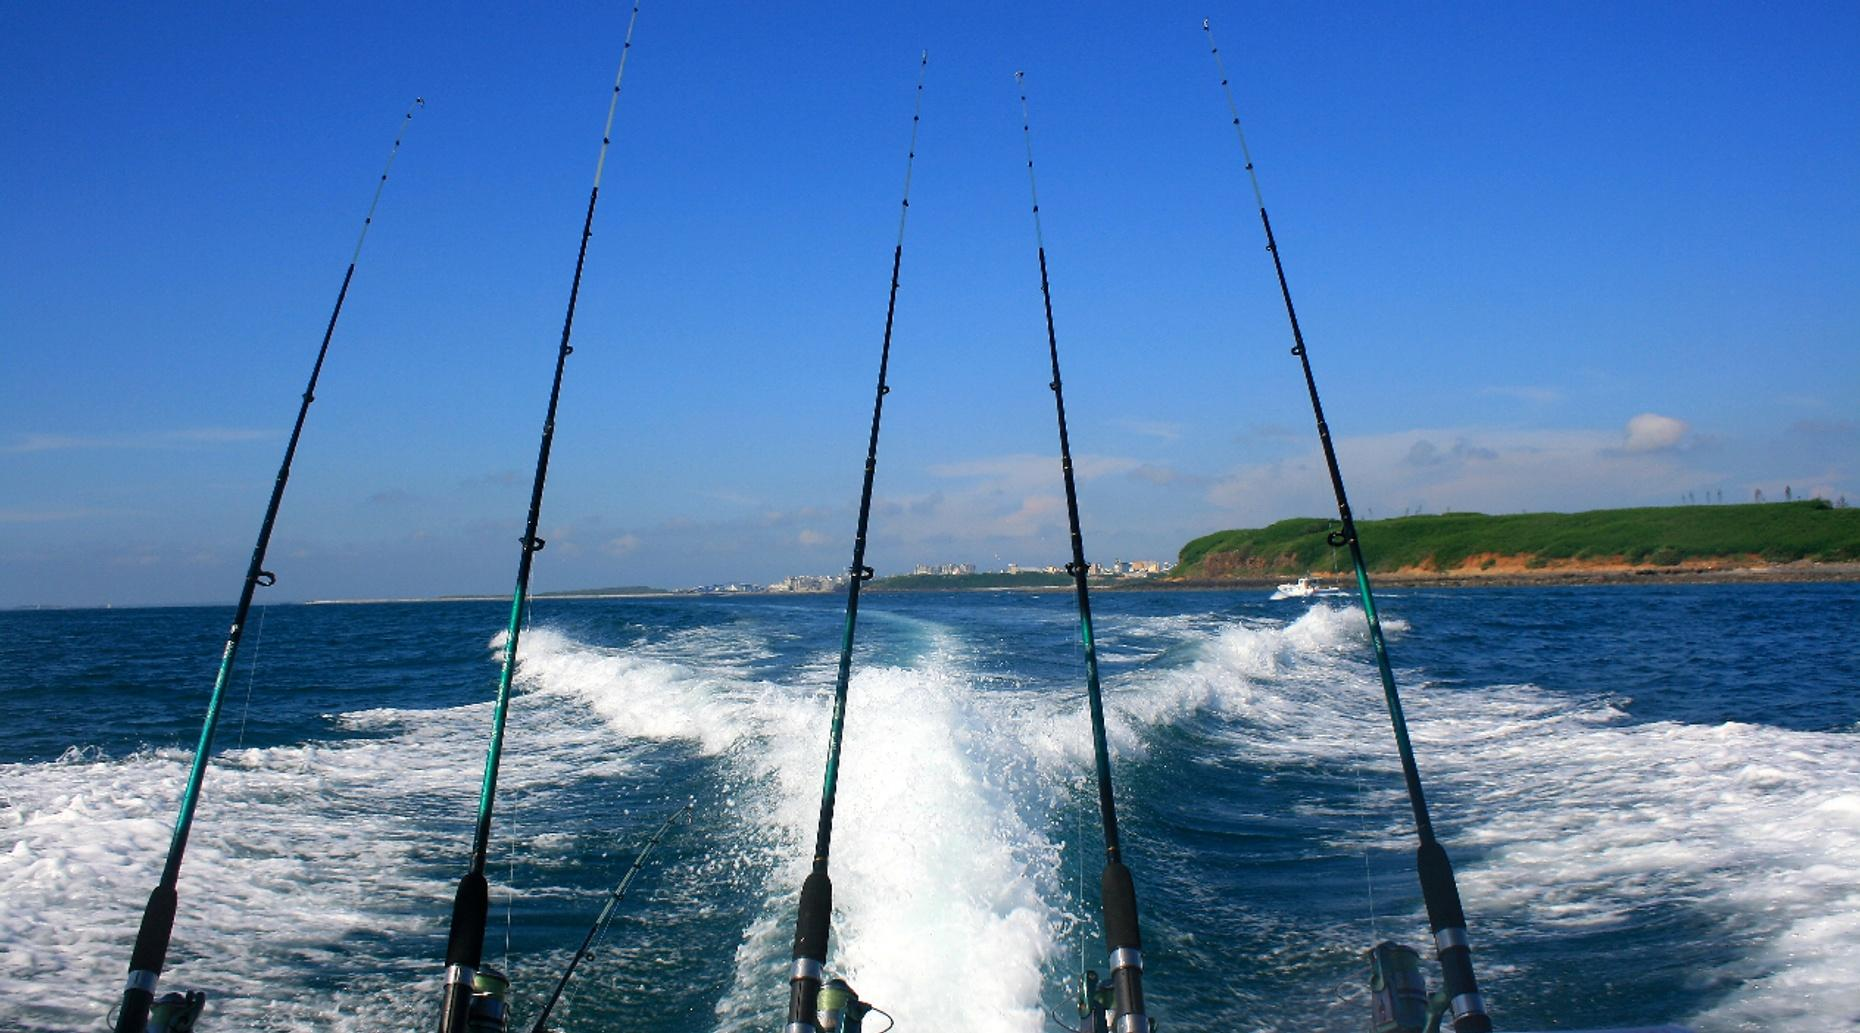 Half-Day Fishing Charter in the Gulf of Mexico